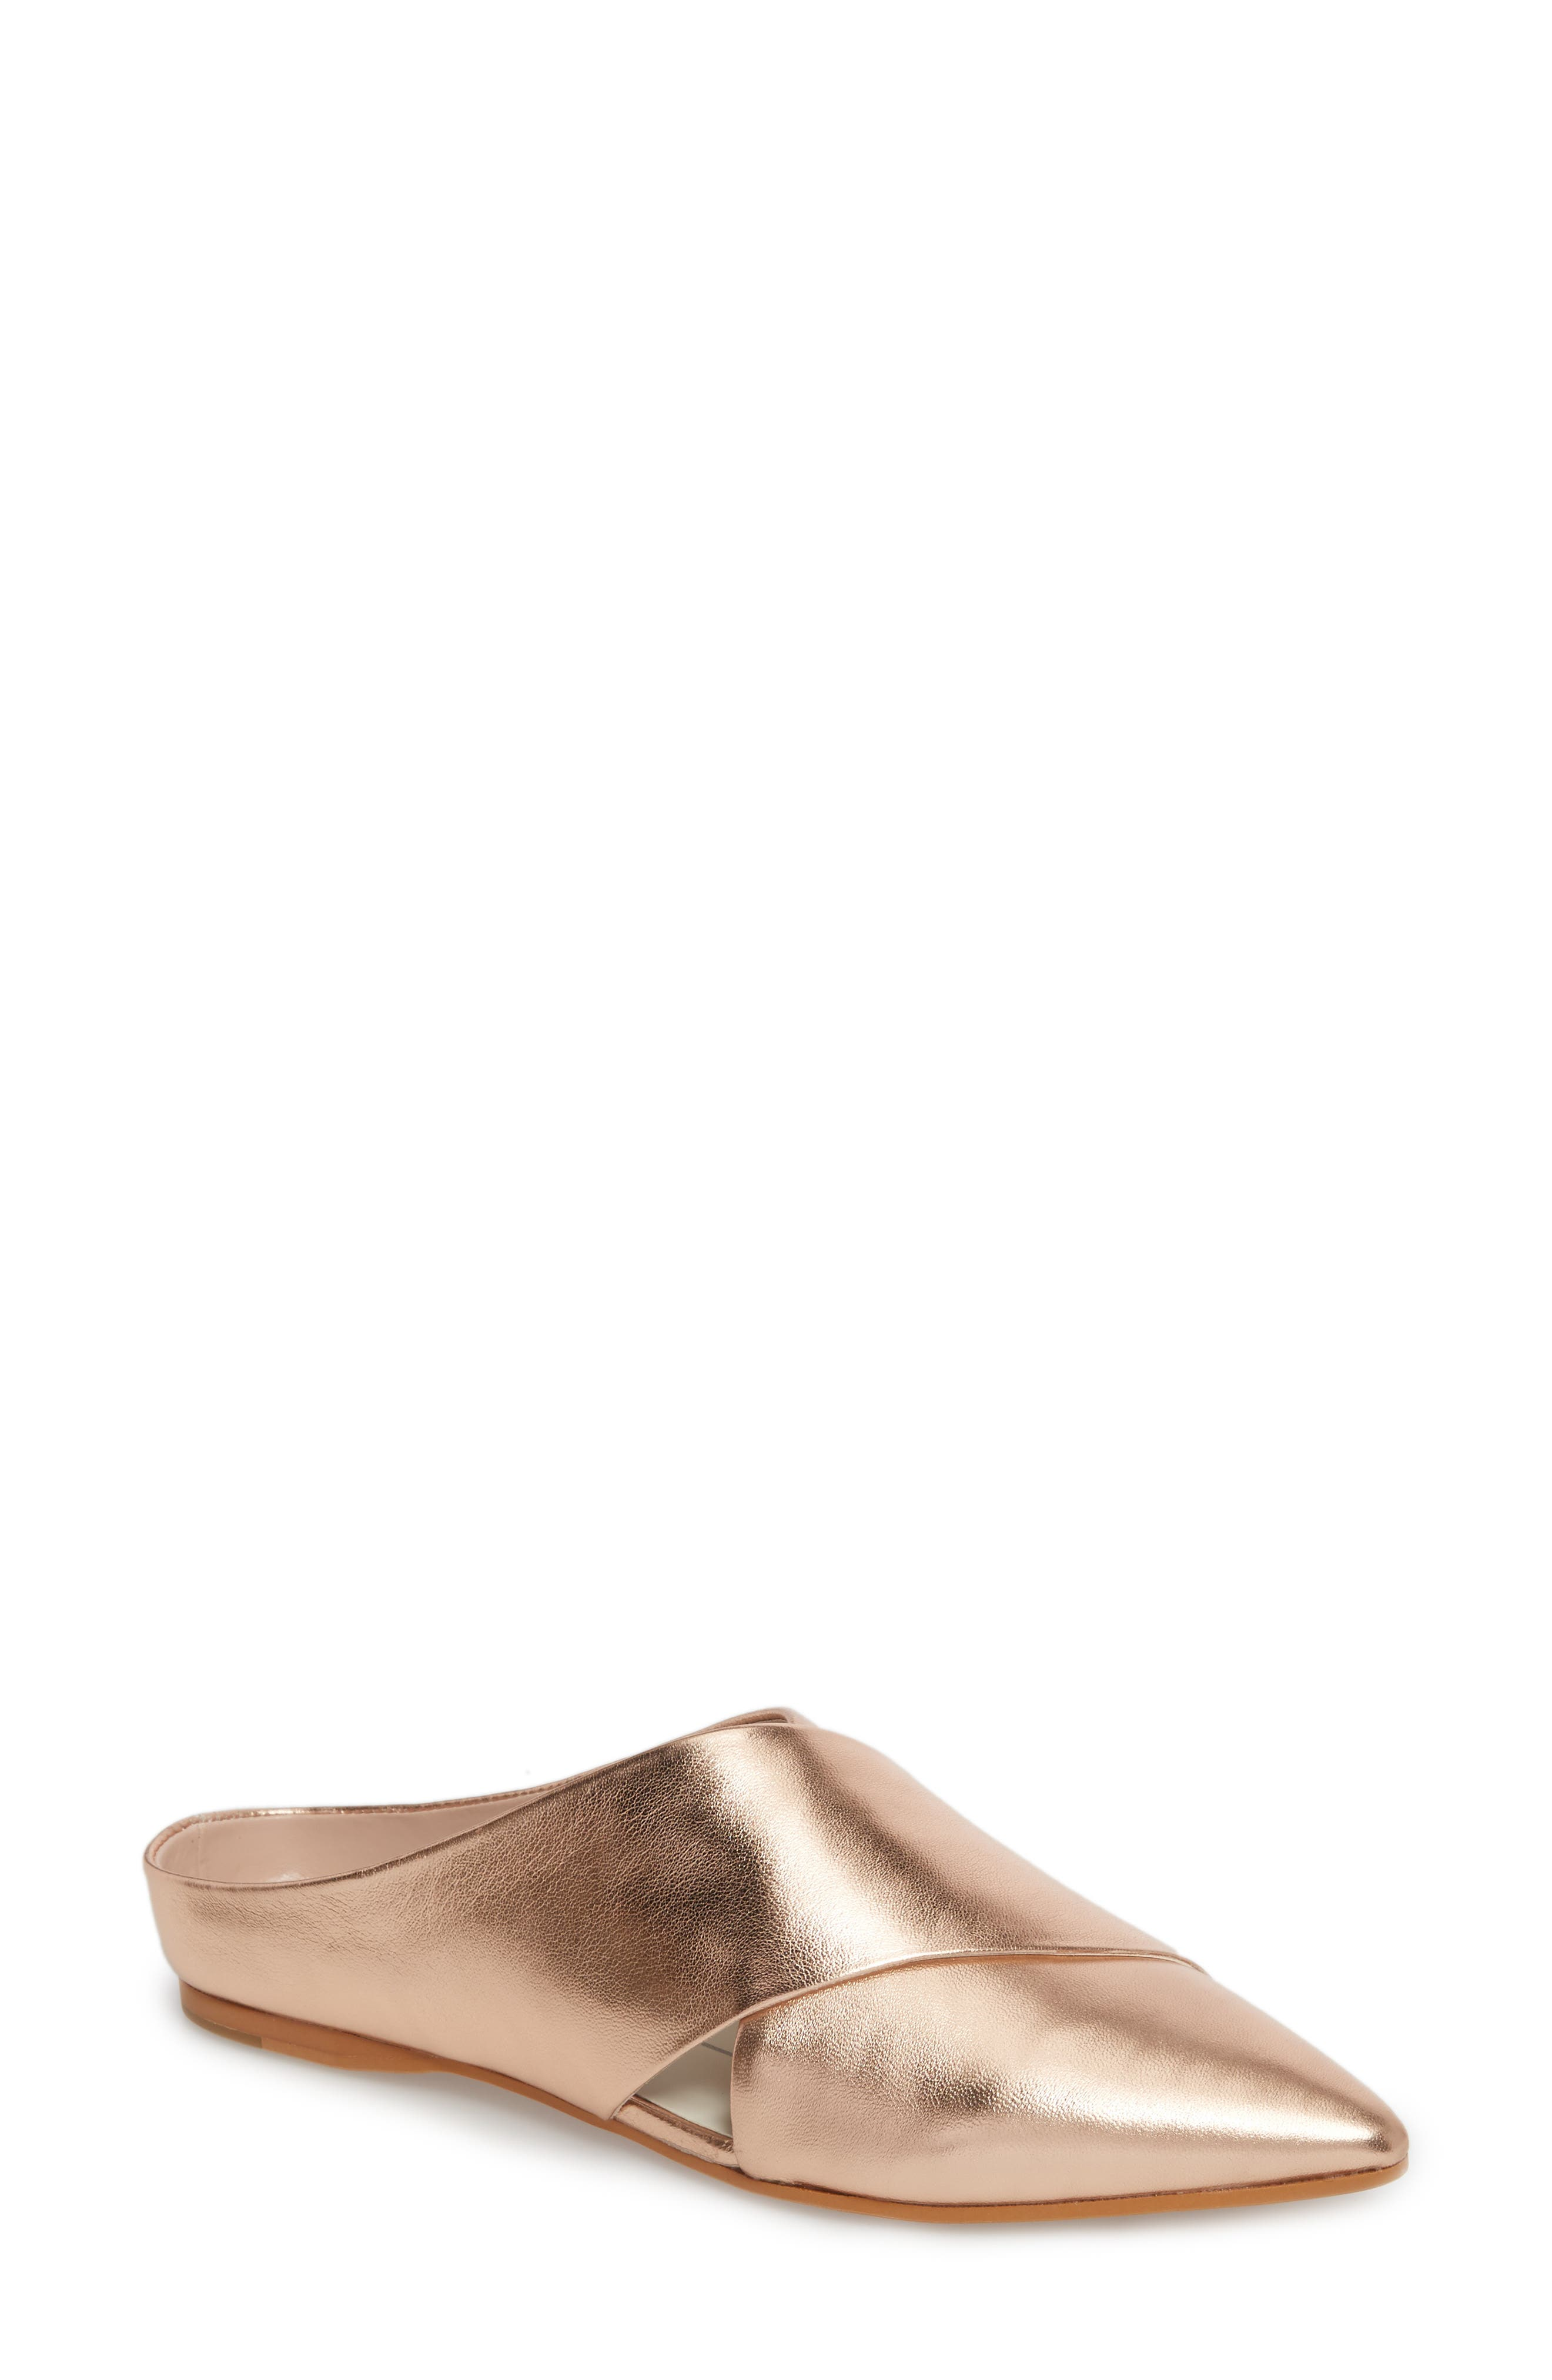 Camia Cross Band Mule,                         Main,                         color, Rose Gold Leather